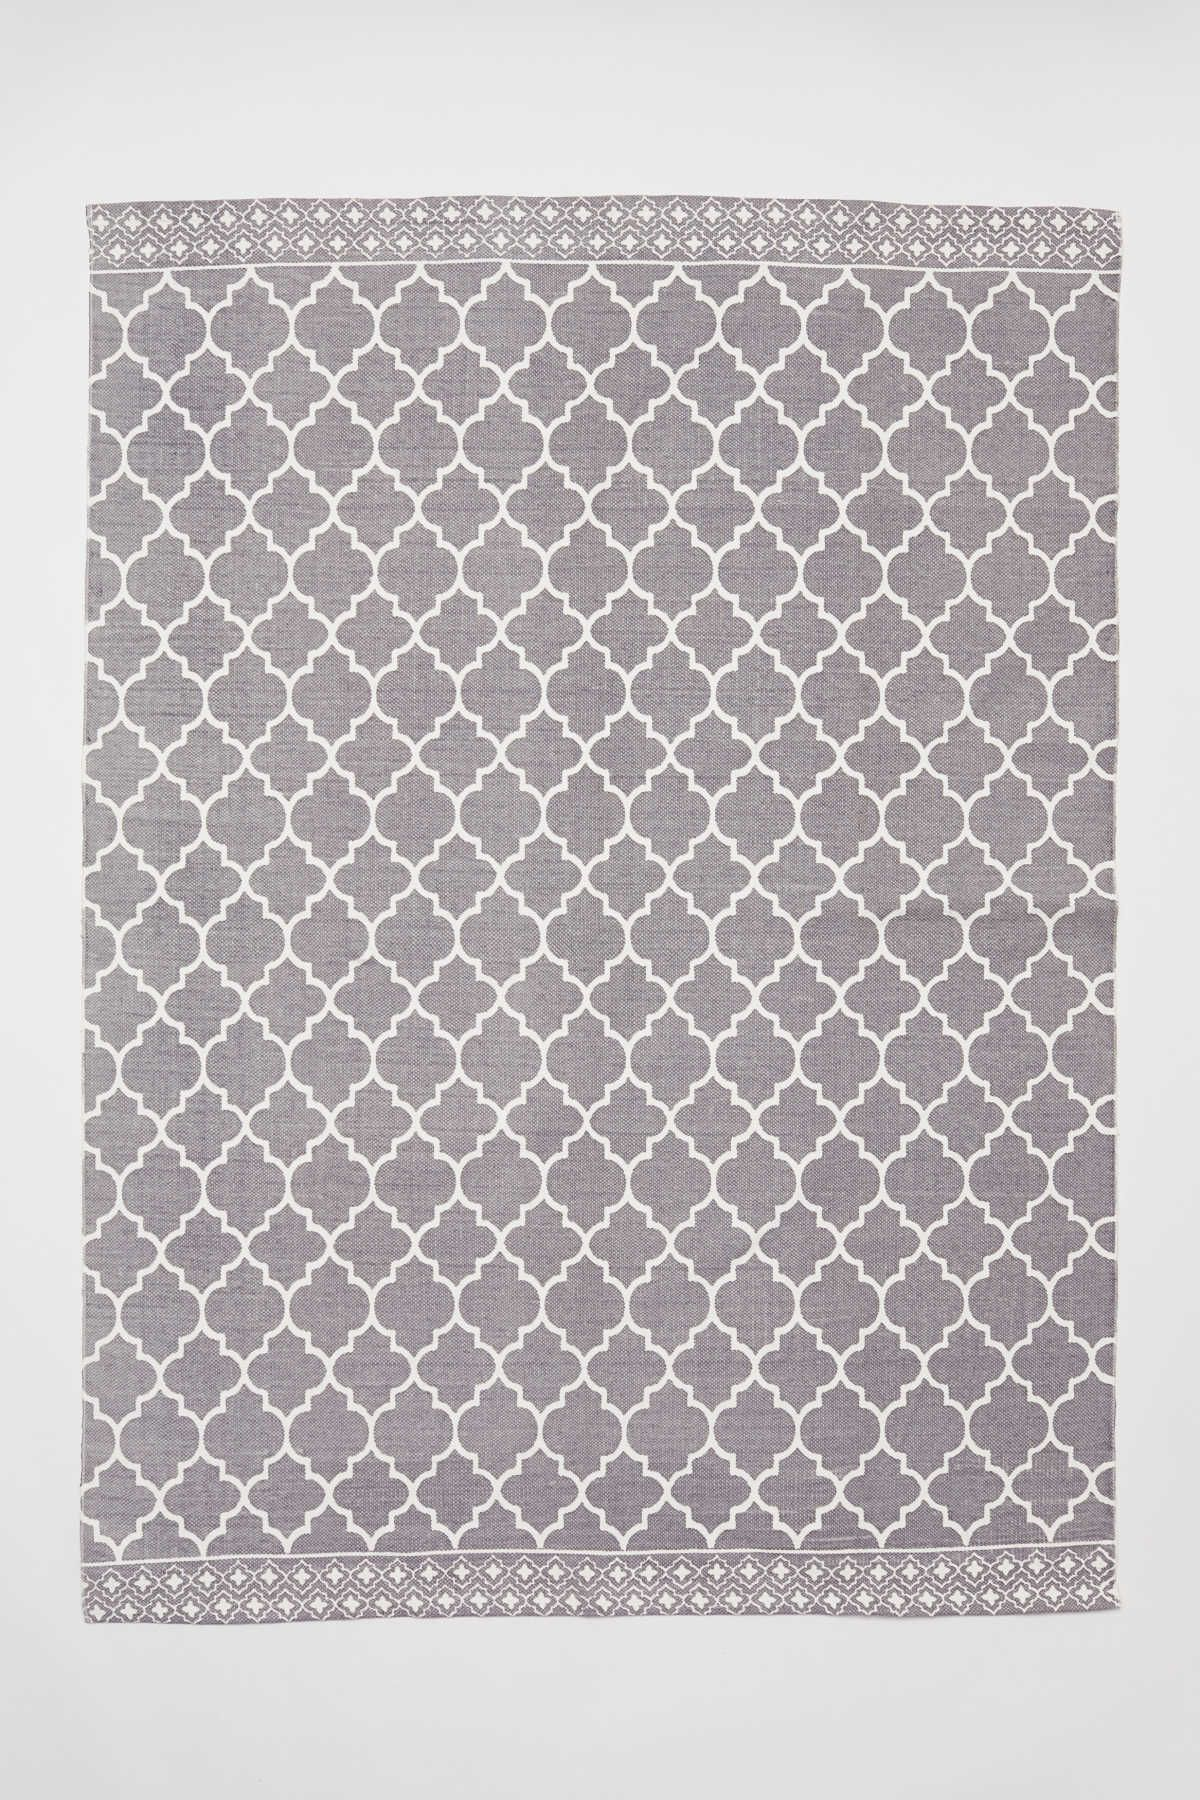 Rectangular Rug In Cotton Fabric With A Printed Pattern At